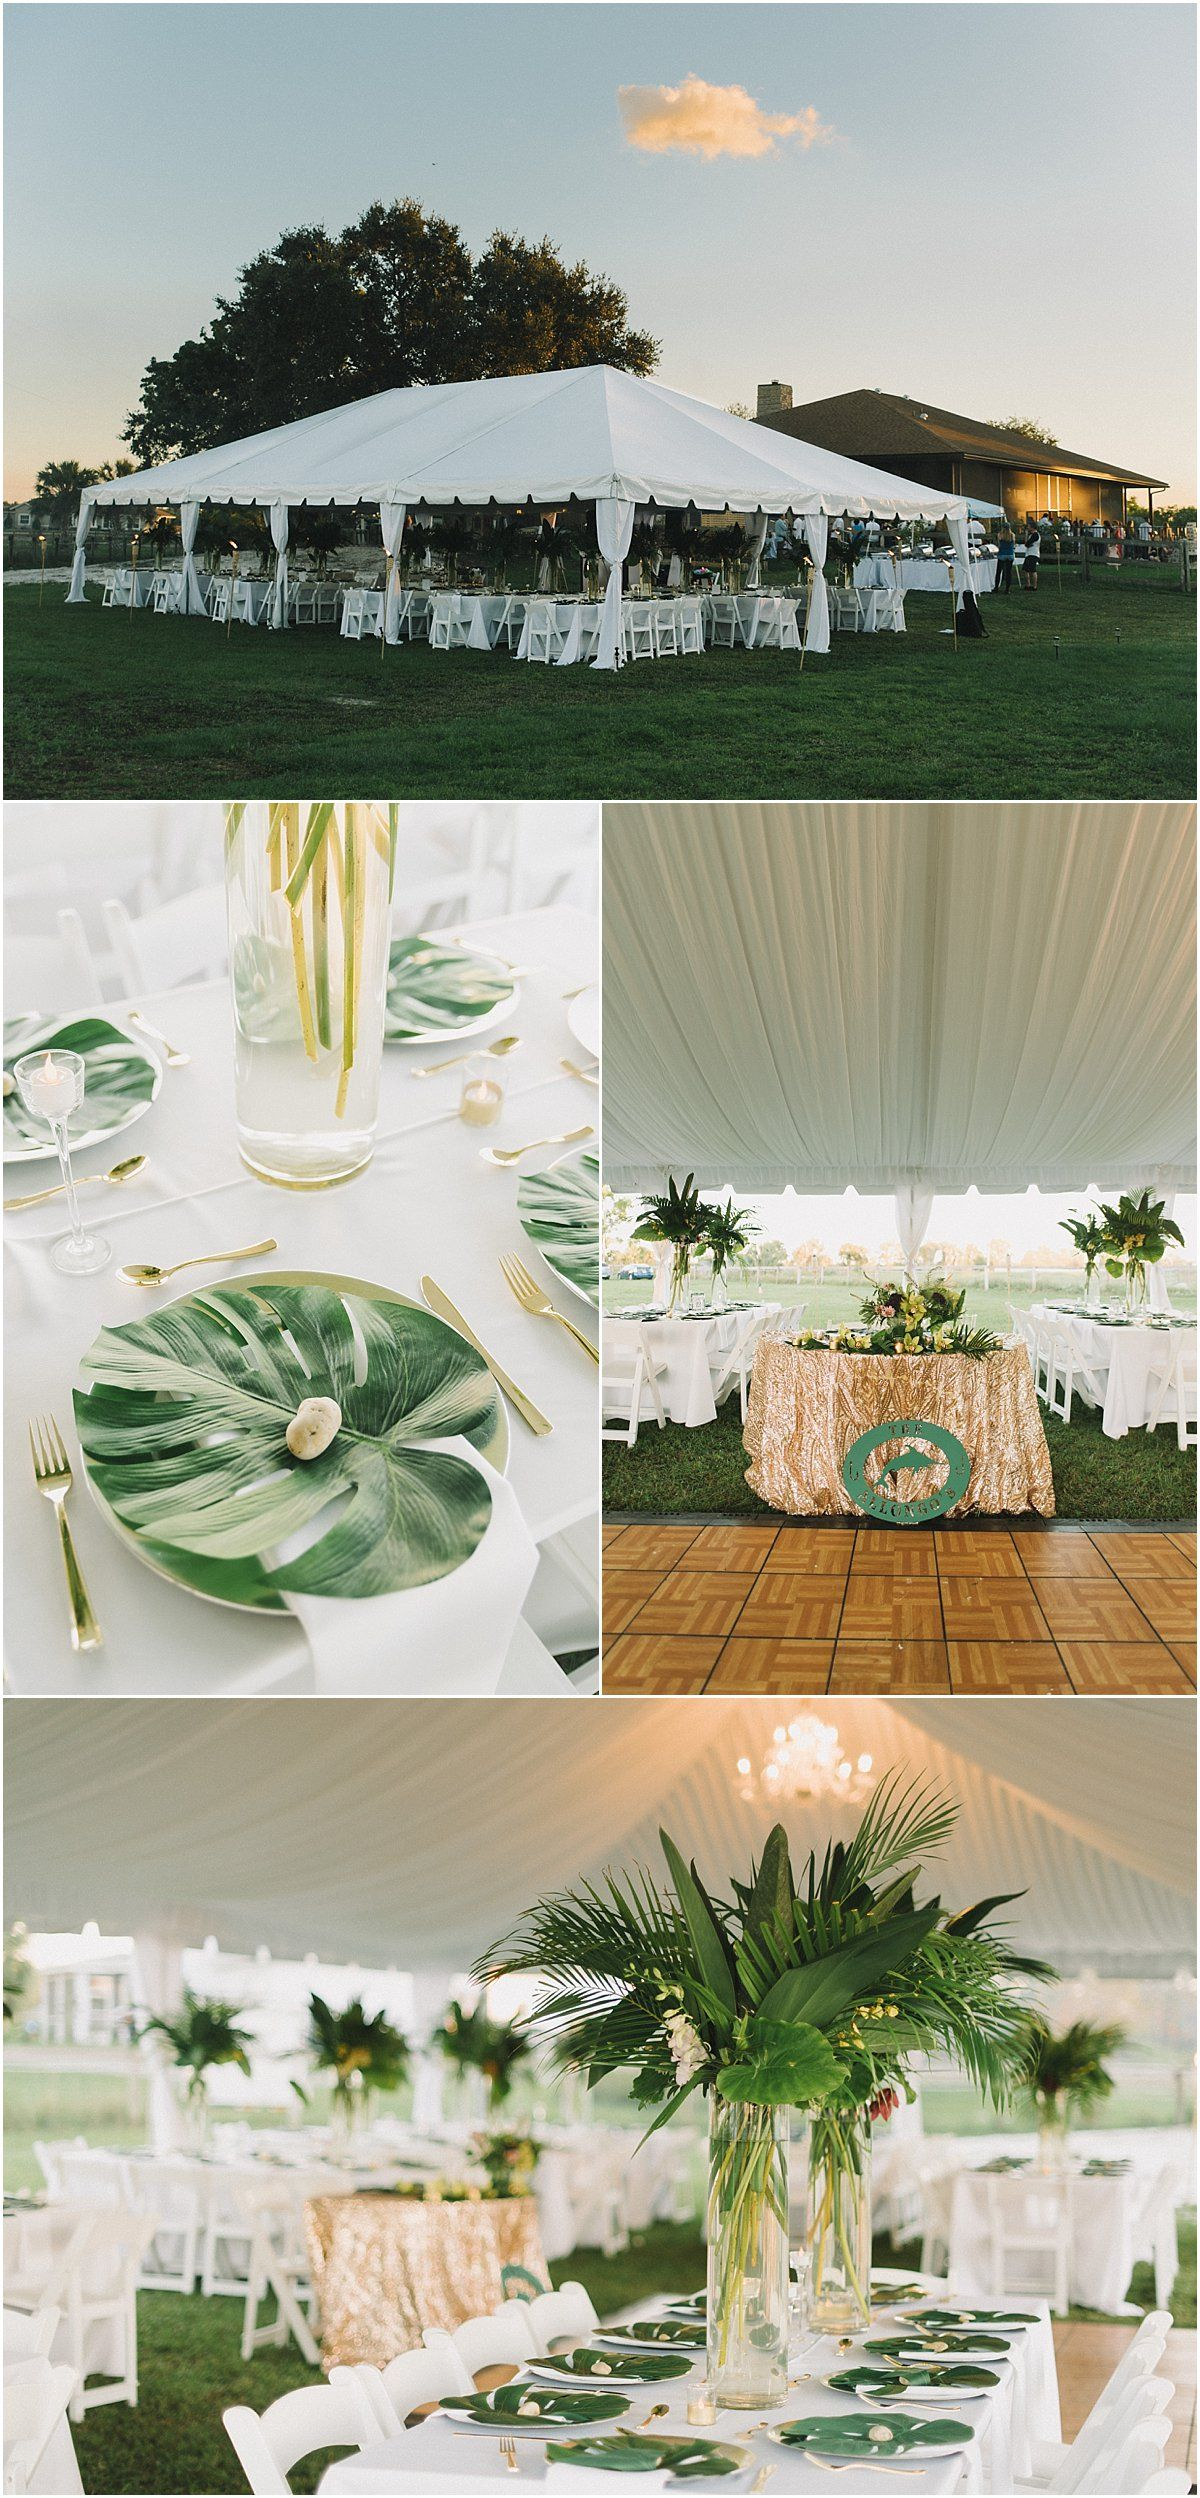 Cost Of Backyard Wedding tropical backyard wedding in palm beach, fl_robert madrid